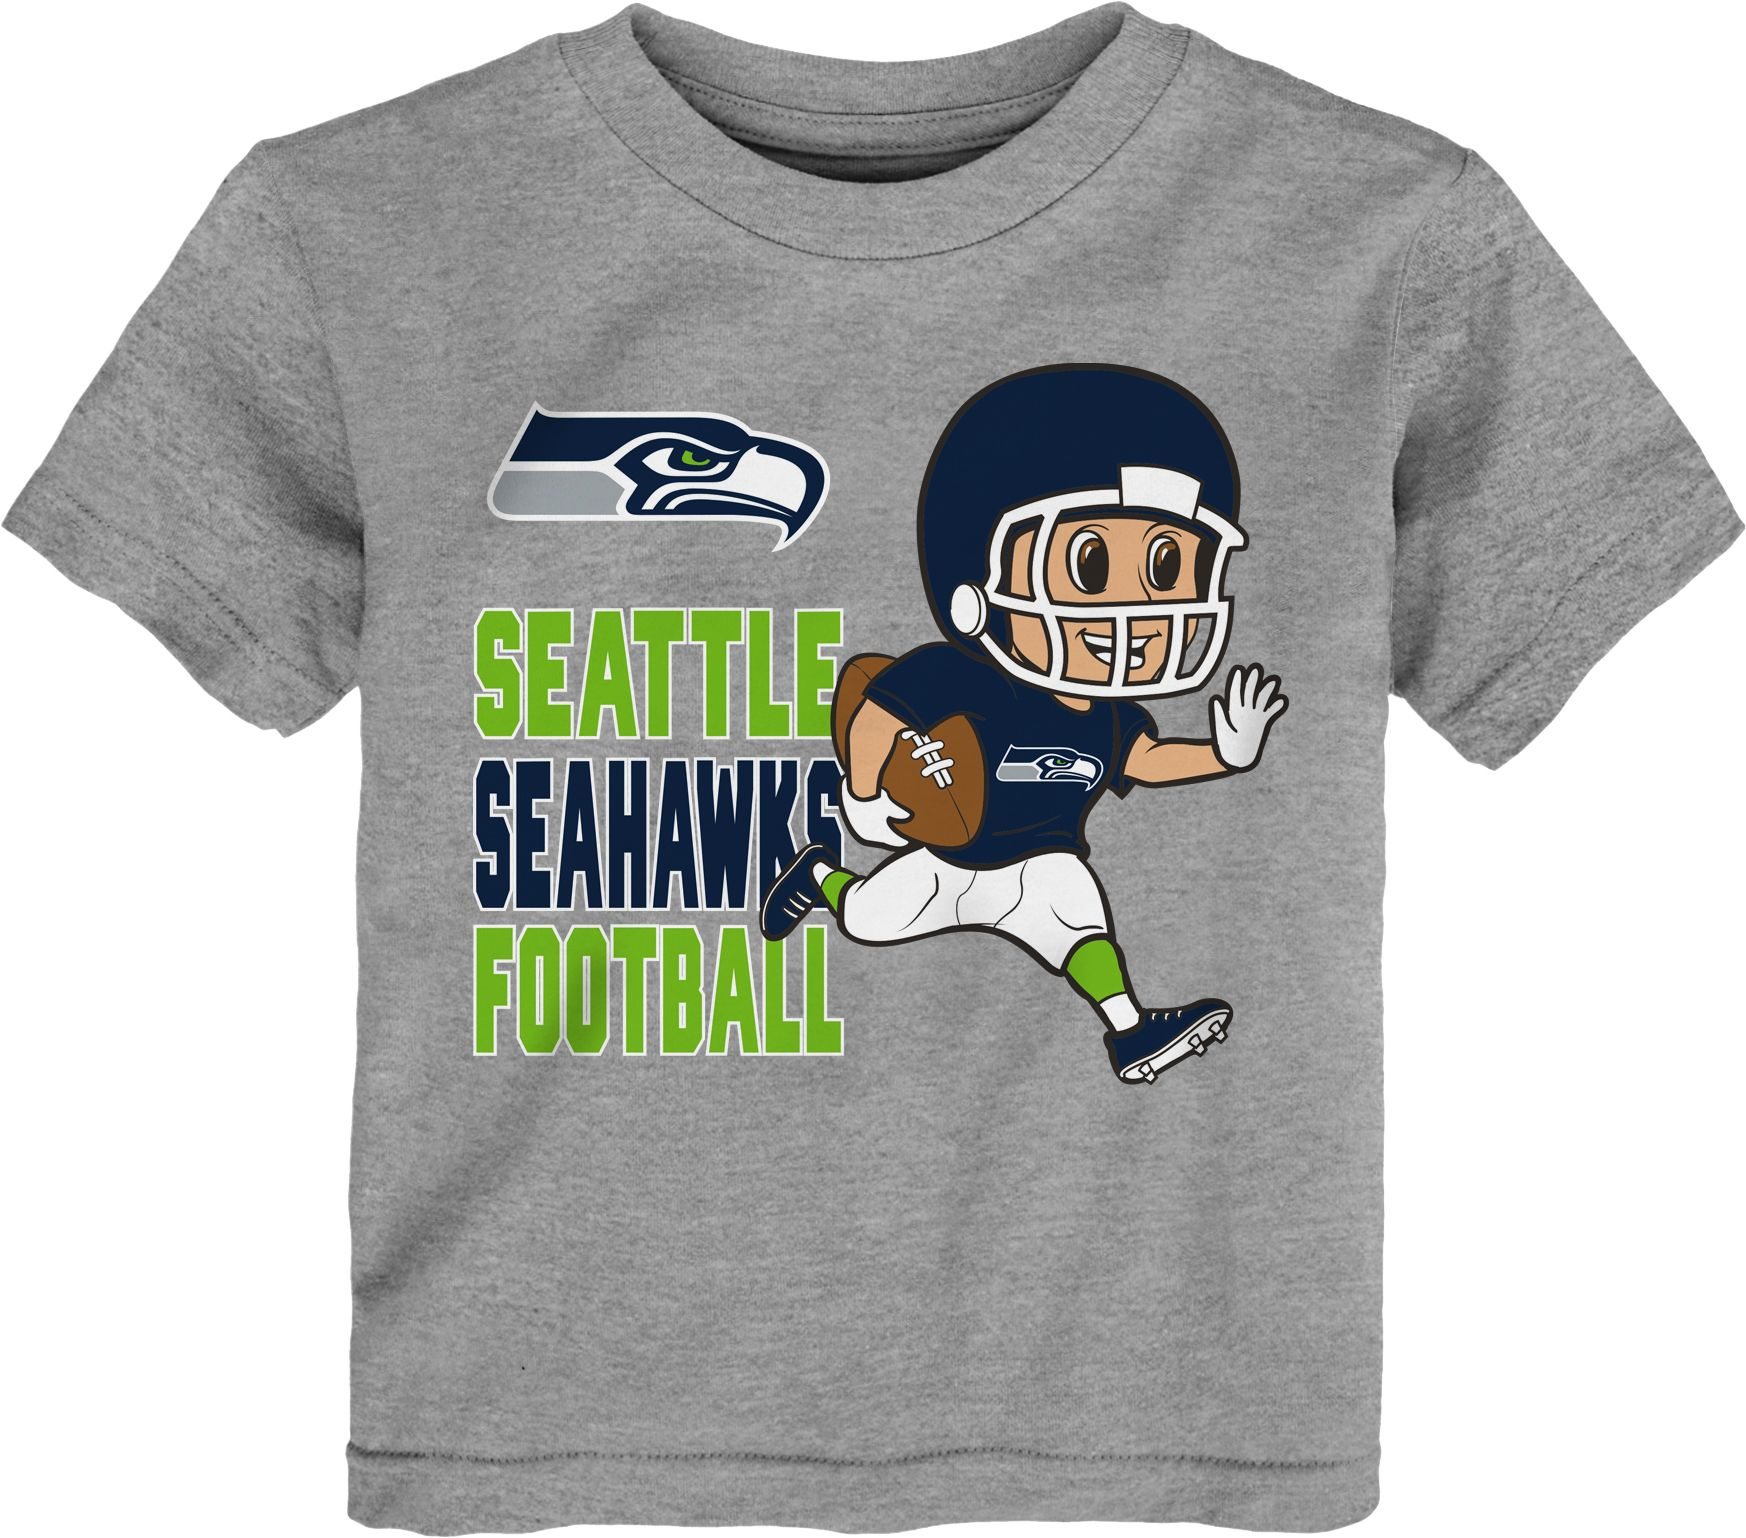 seattle seahawks player t shirts